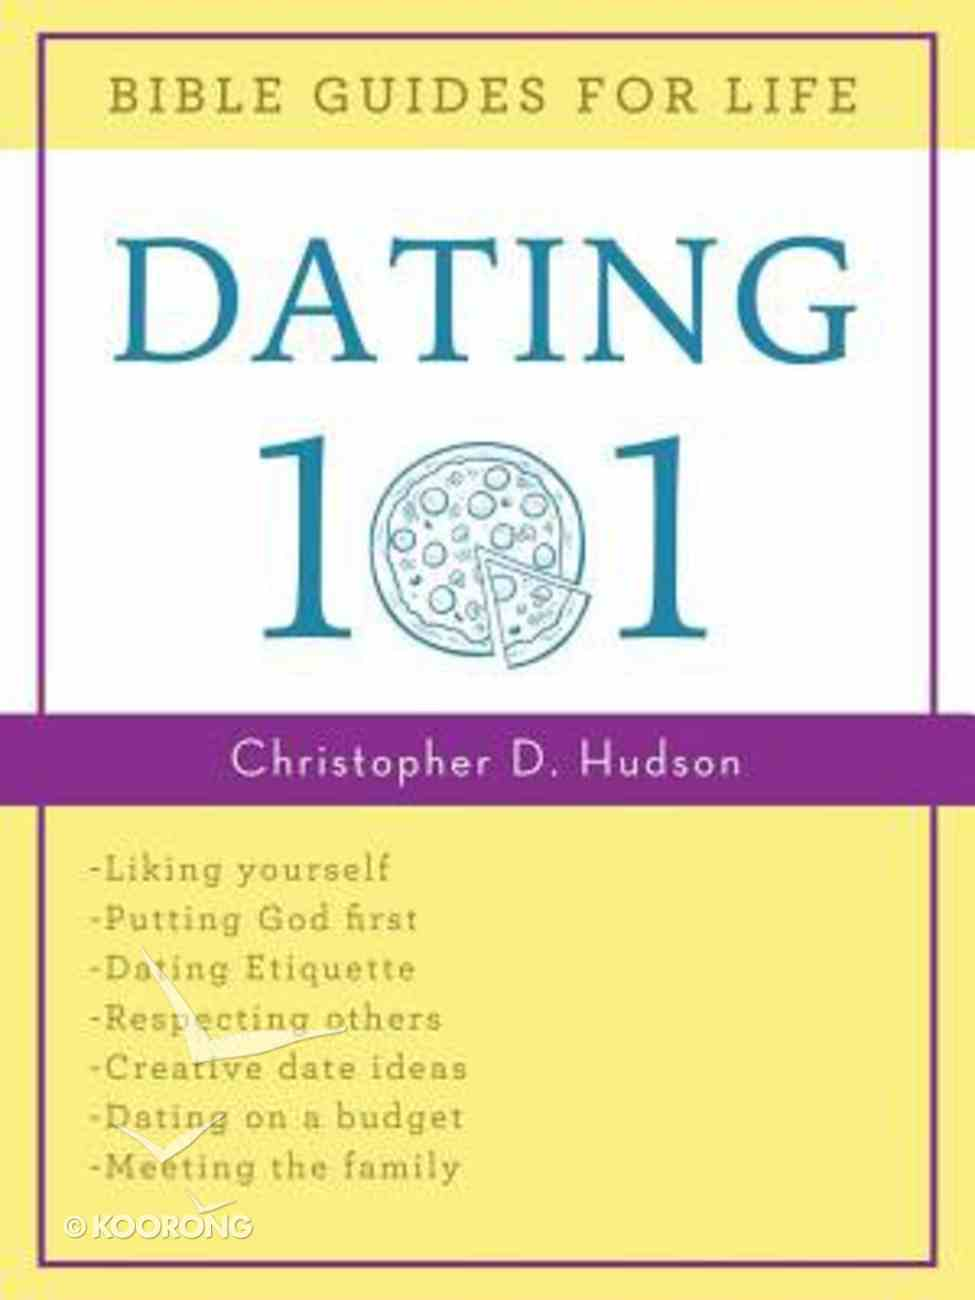 Dating 101 (Bible Guides For Life Series) Paperback